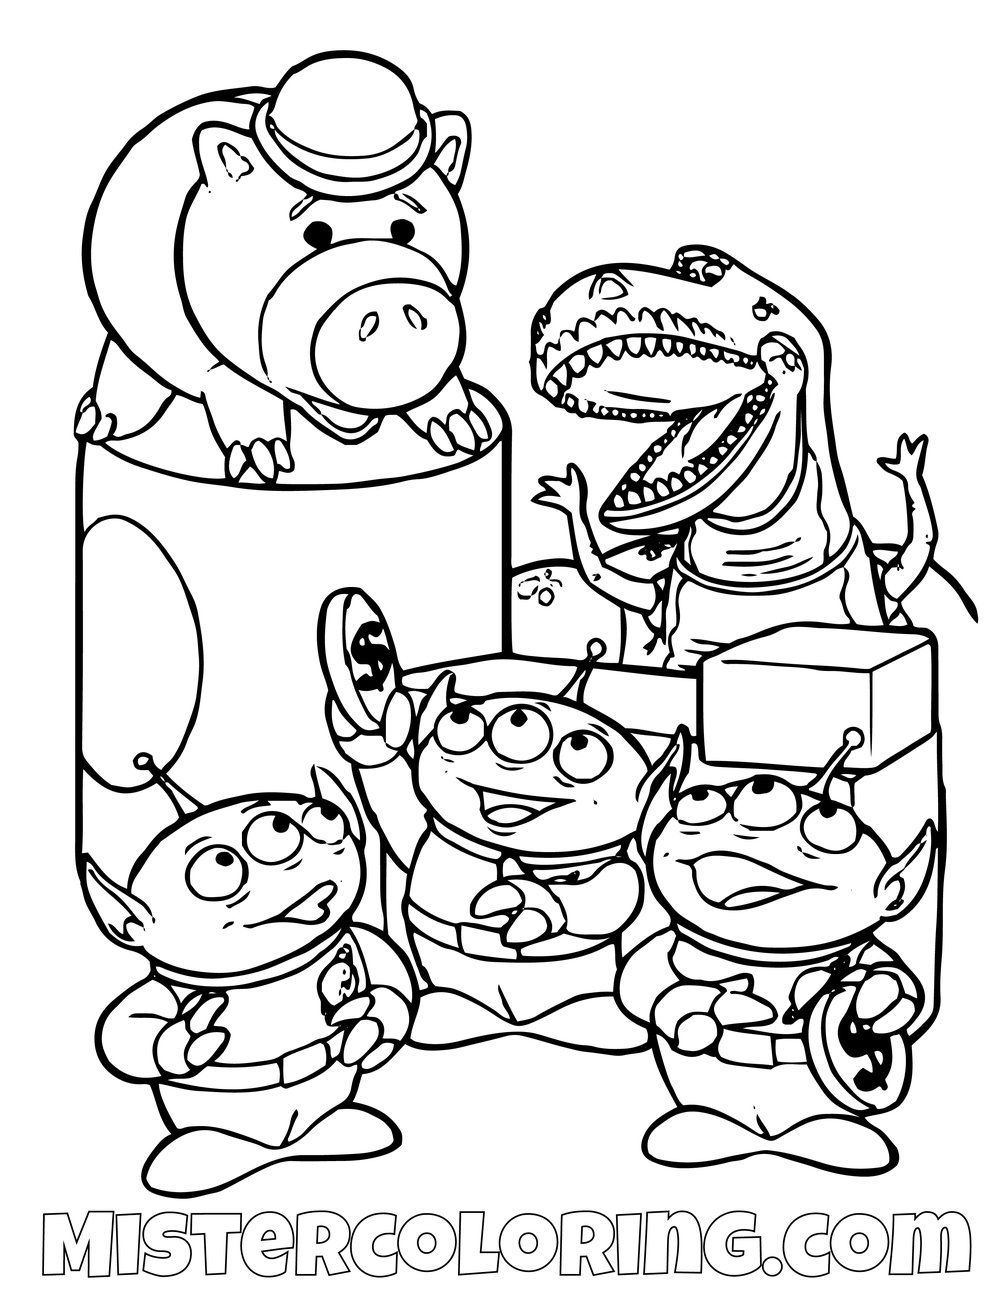 Aliens Rex And Ham Toy Story Coloring Page Toy Story Coloring